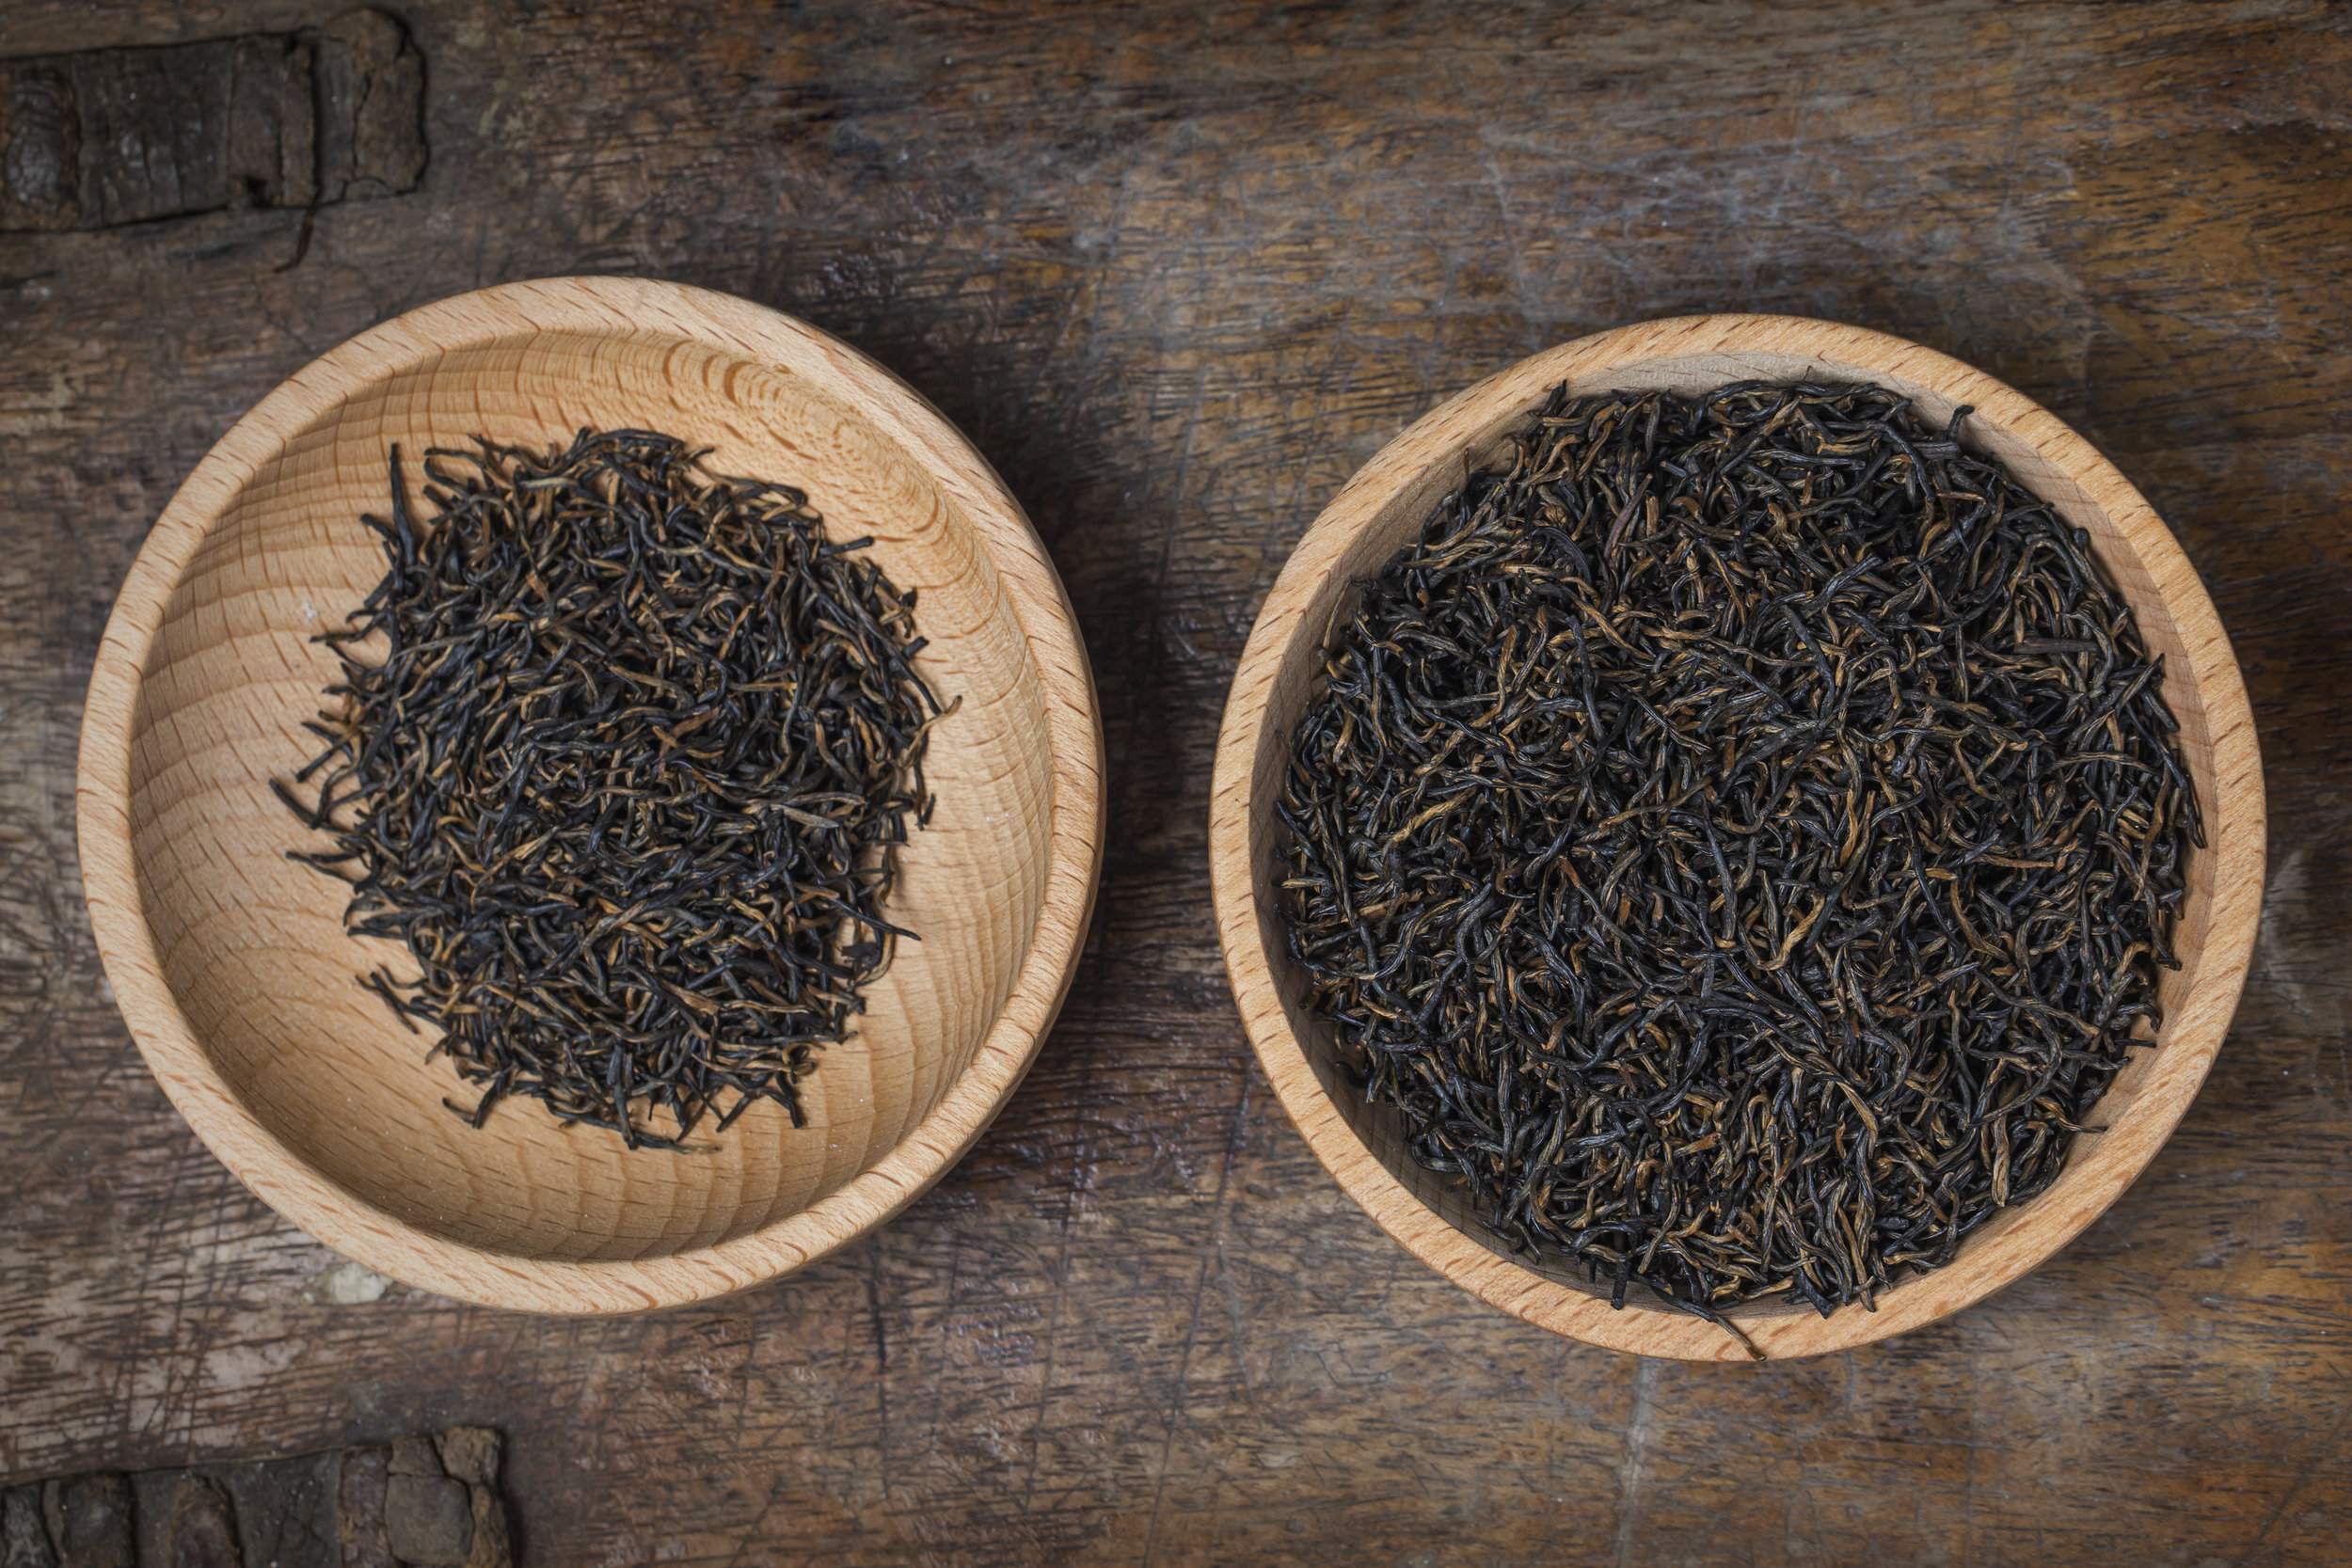 Dried & Baked - Tea leaves are dried, rolled and baked to make a black tea. Persian Choice™ Tea leaves all go through a stringent evaluation and are tested after each harvest and batch to ensure the perfect balance of bold and strong bodied flavor.